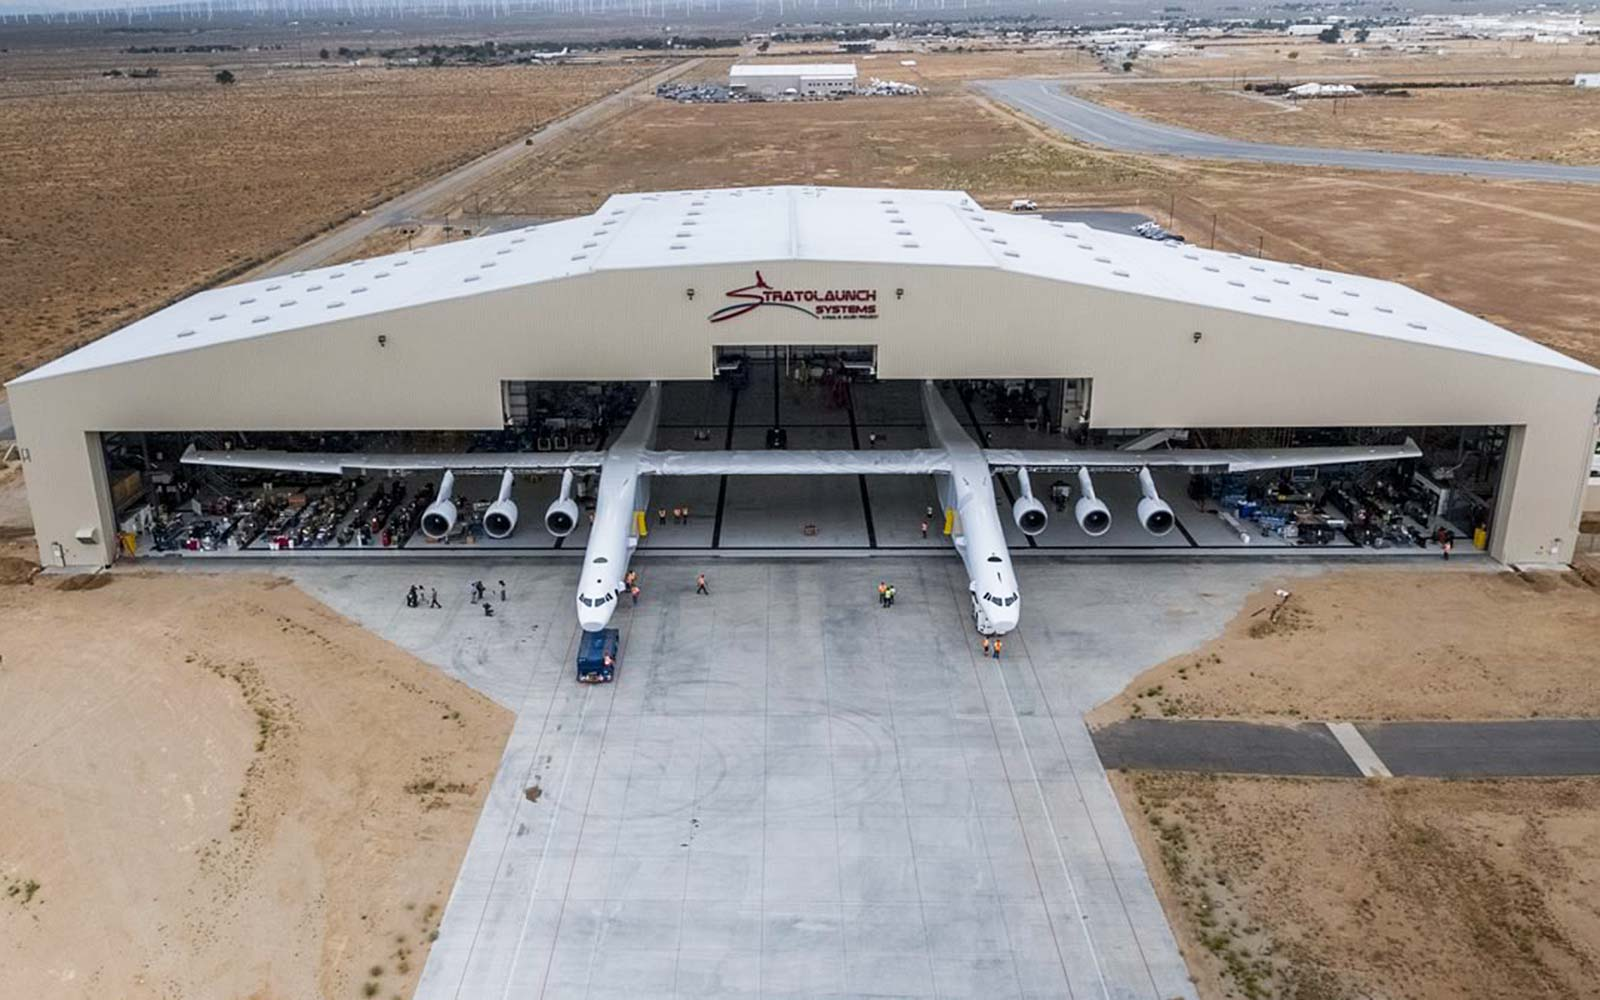 Stratolaunch Paul Allen World's Largest Airplane Rocket